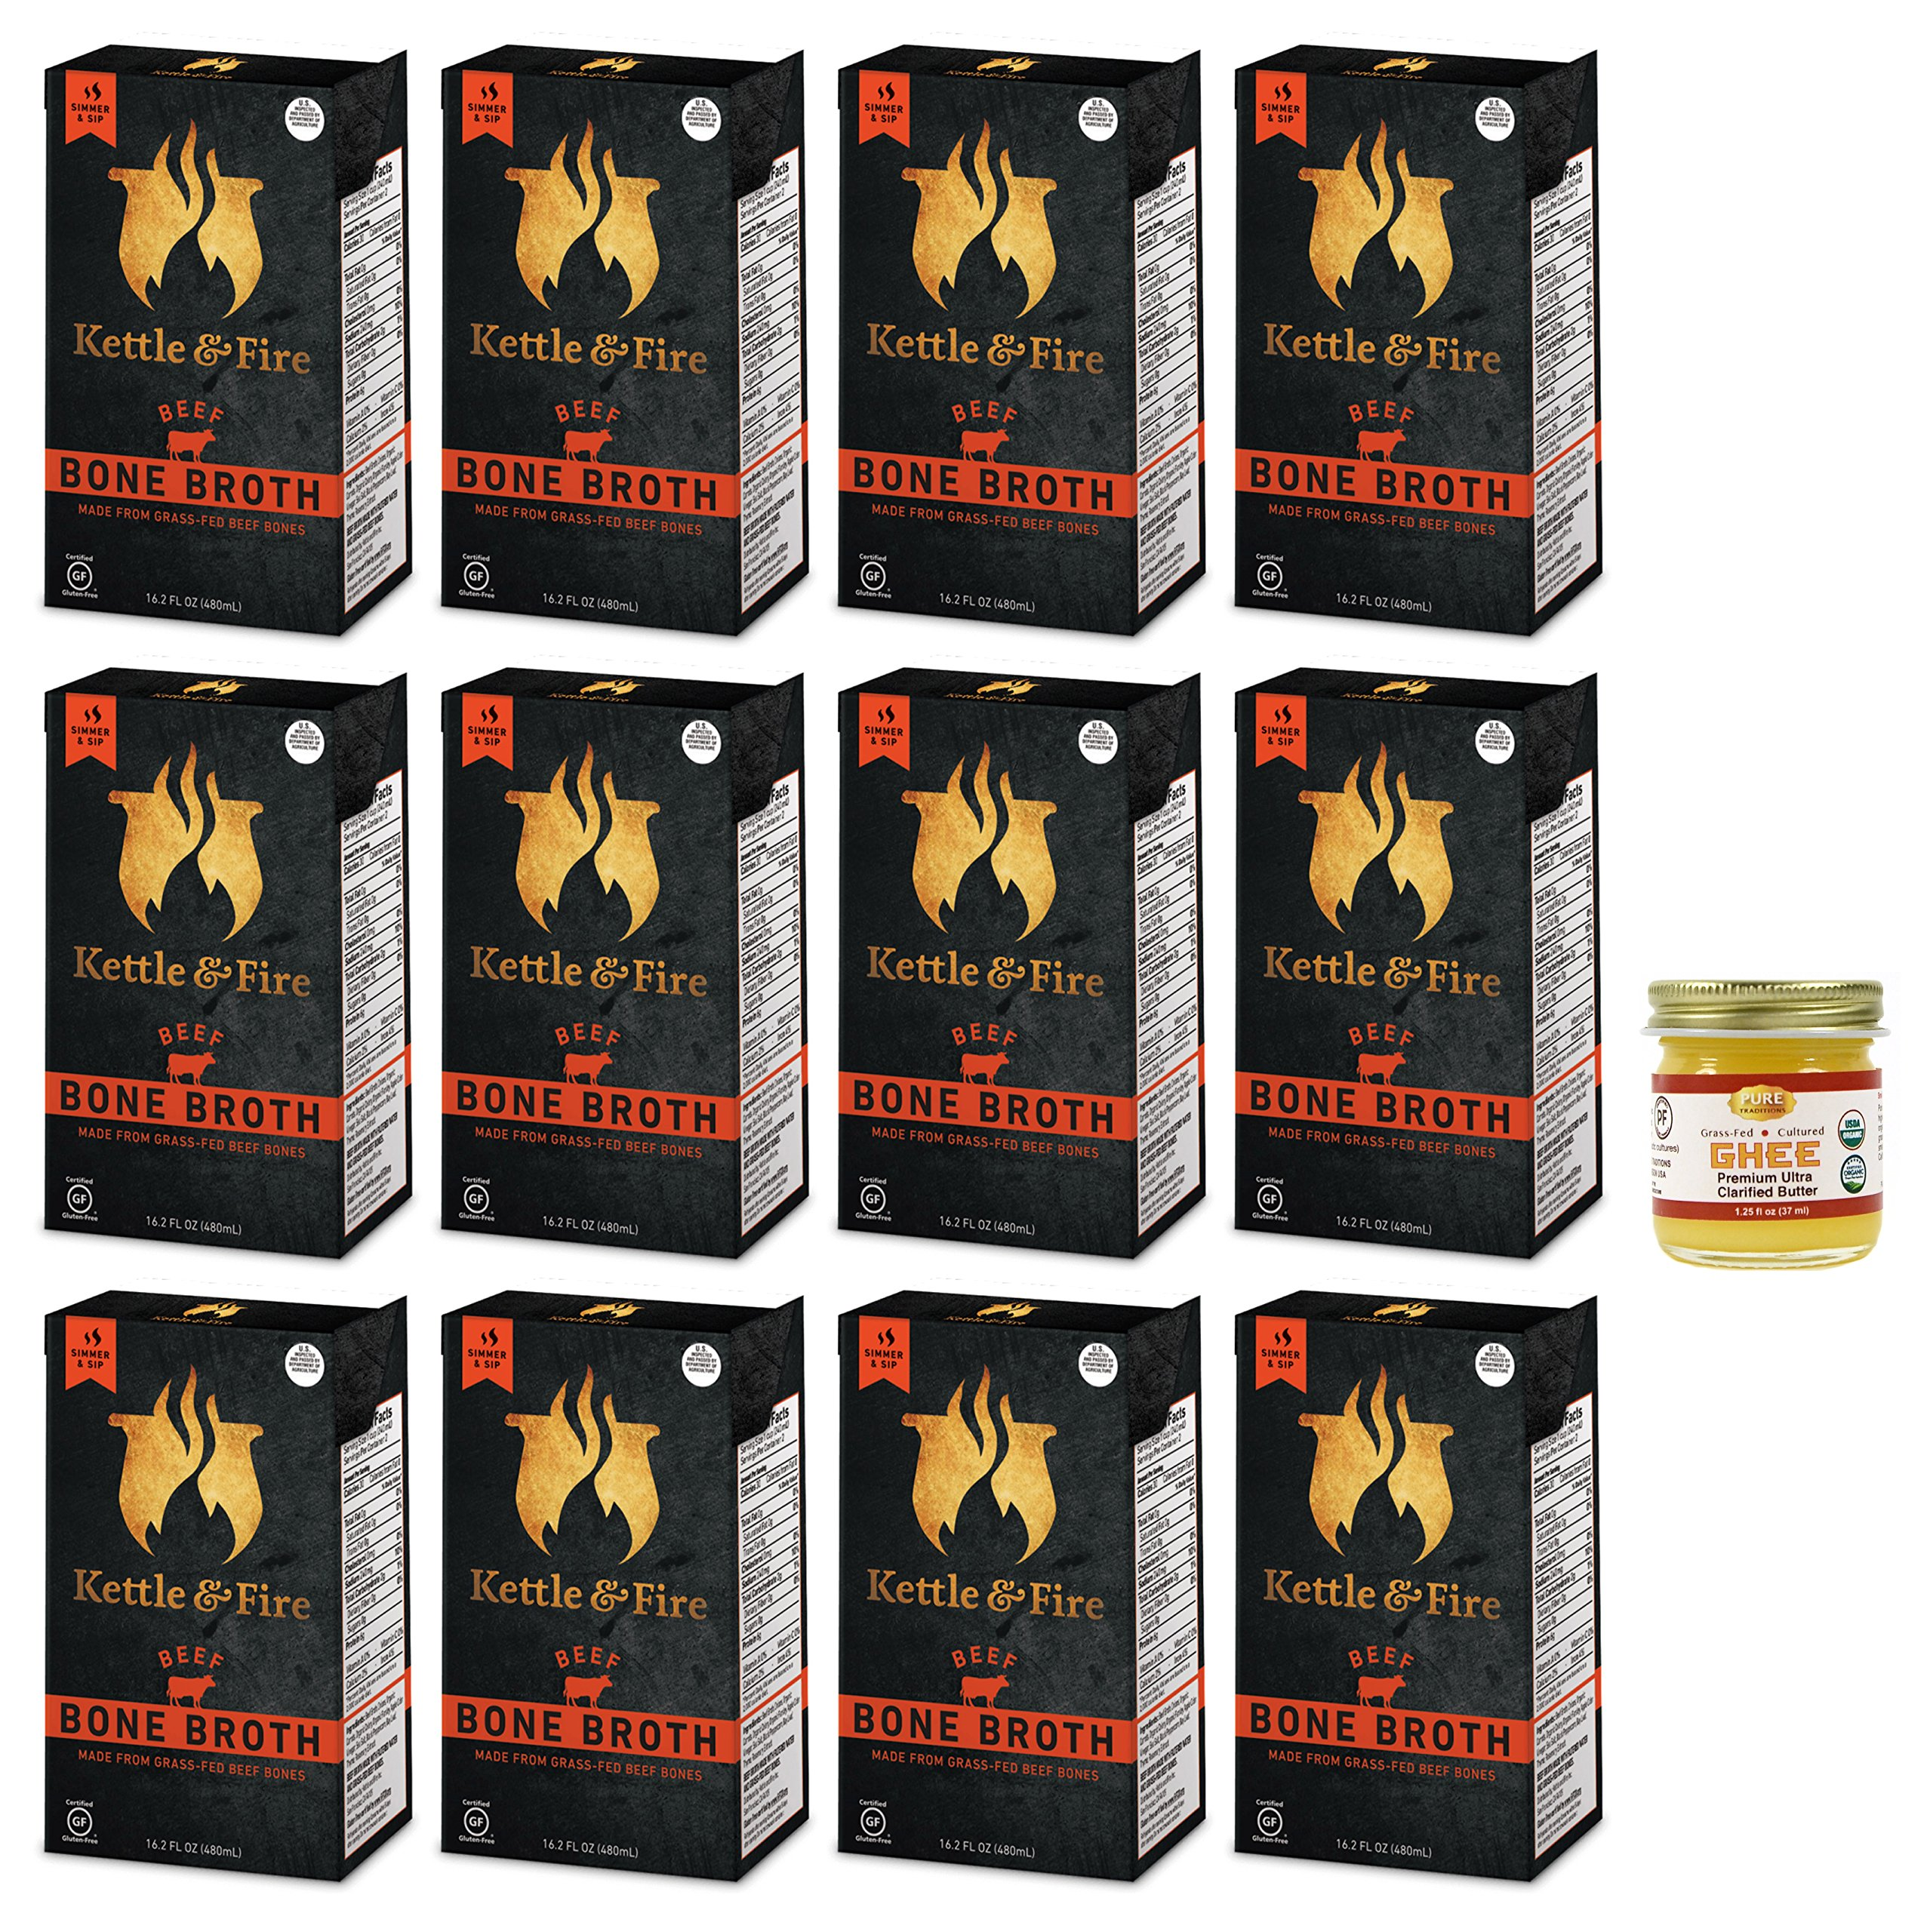 Kettle & Fire - 12 Organic Beef Bone Broths with Pure Traditions ghee - ( 12 Beef Broth 16.2 oz with one 1.25 oz ghee)